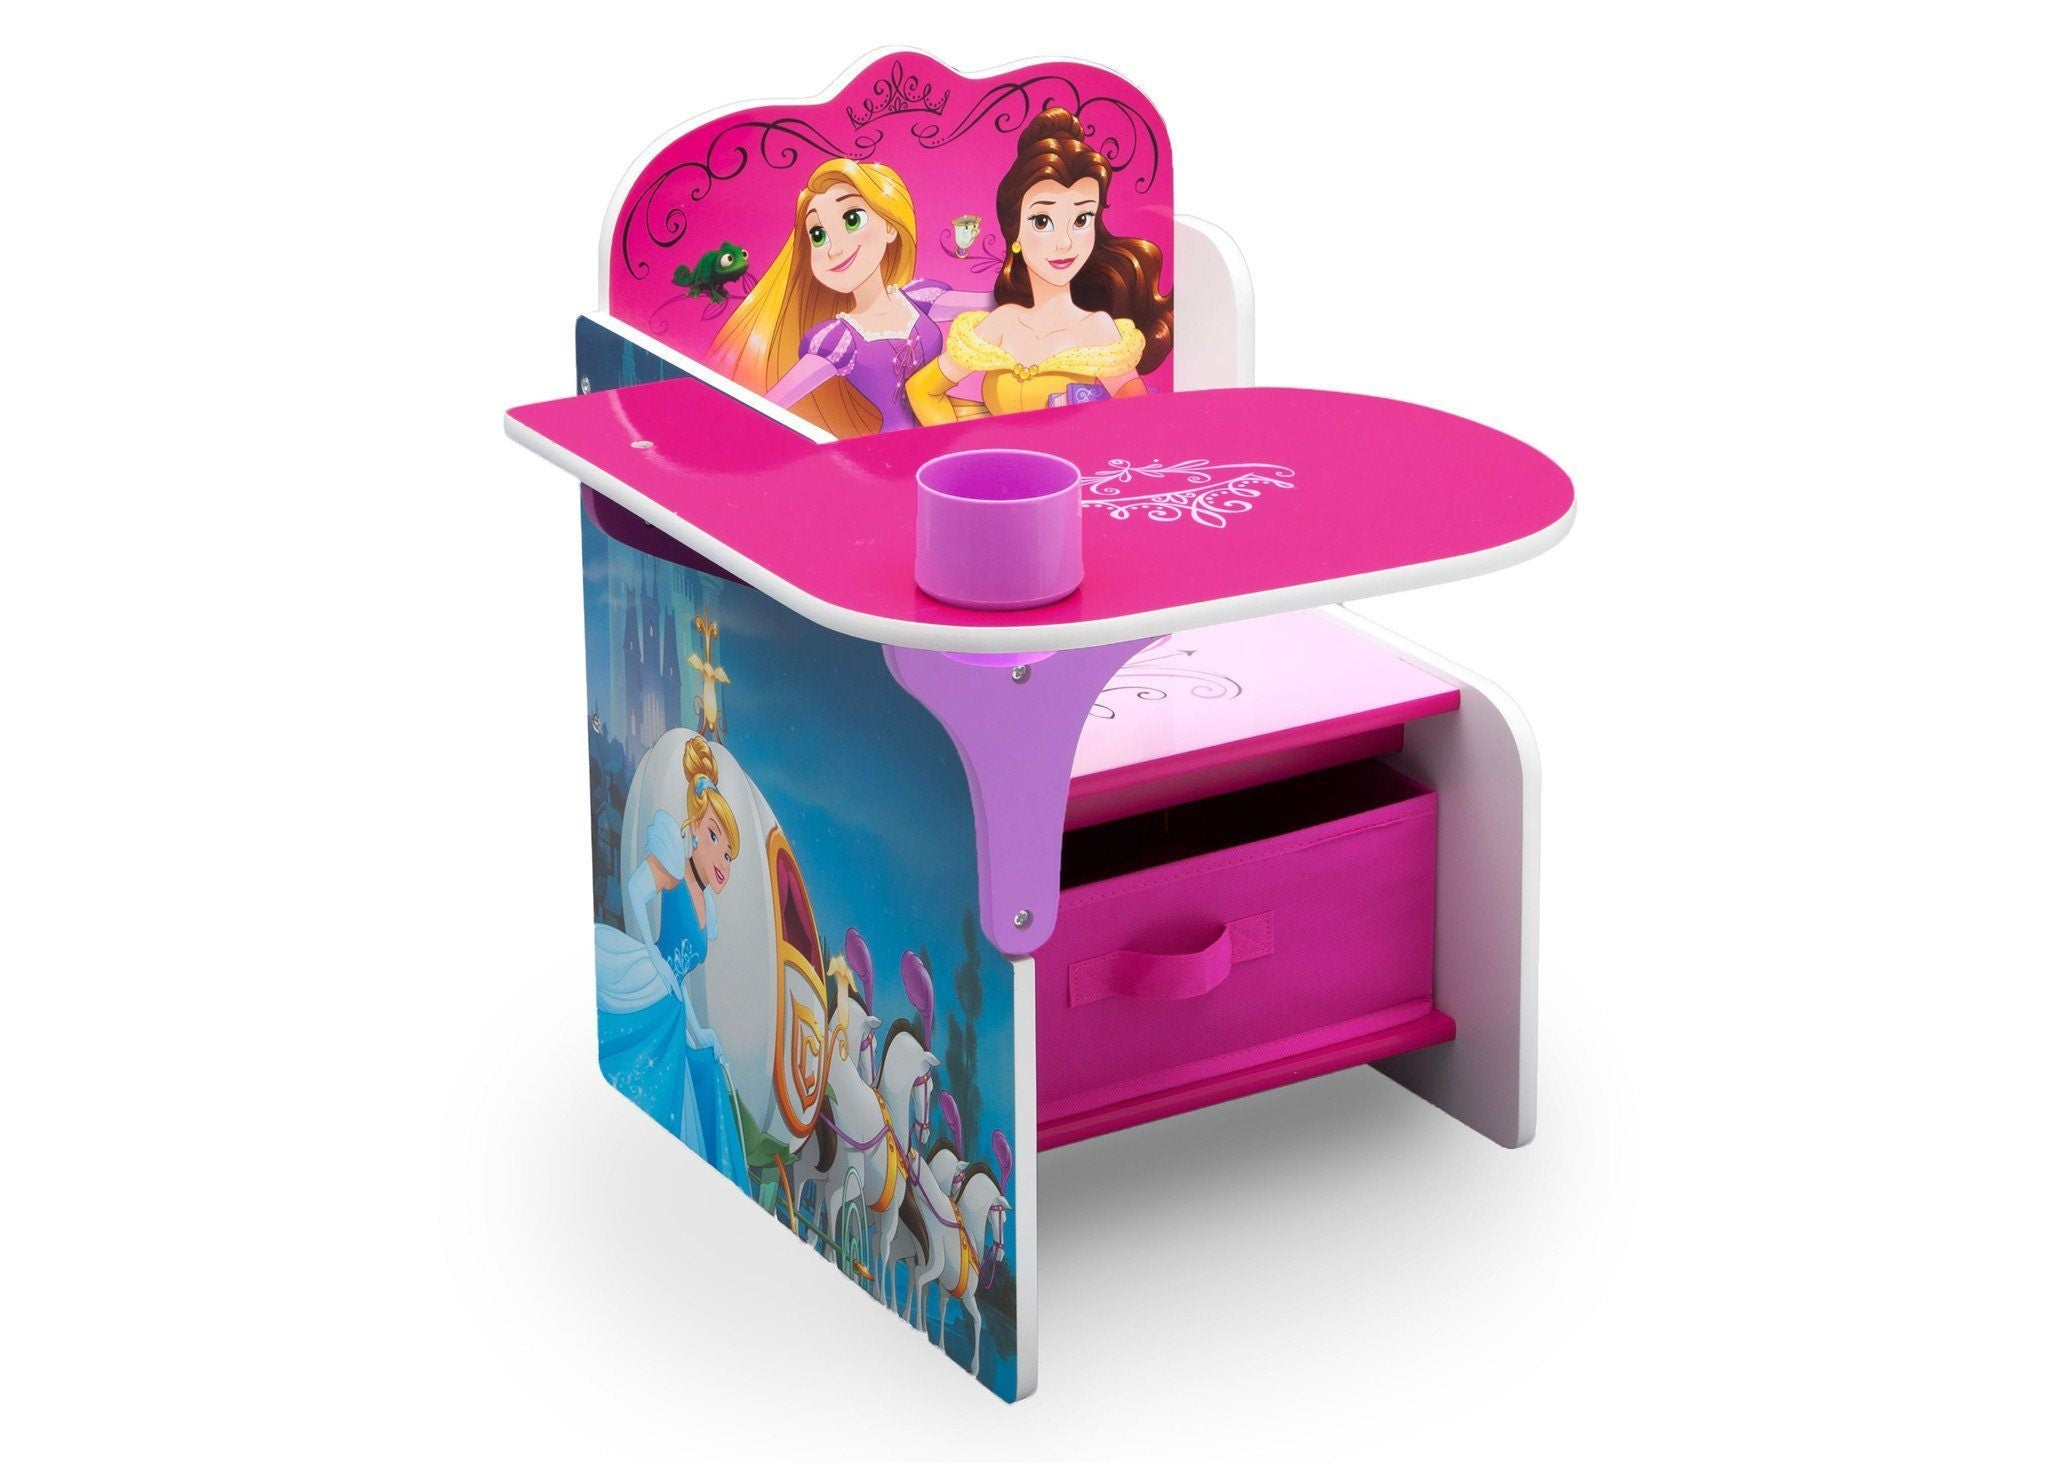 Delta Children Princess Chair Desk With Storage Bin Style 1, Right View A1a  ...